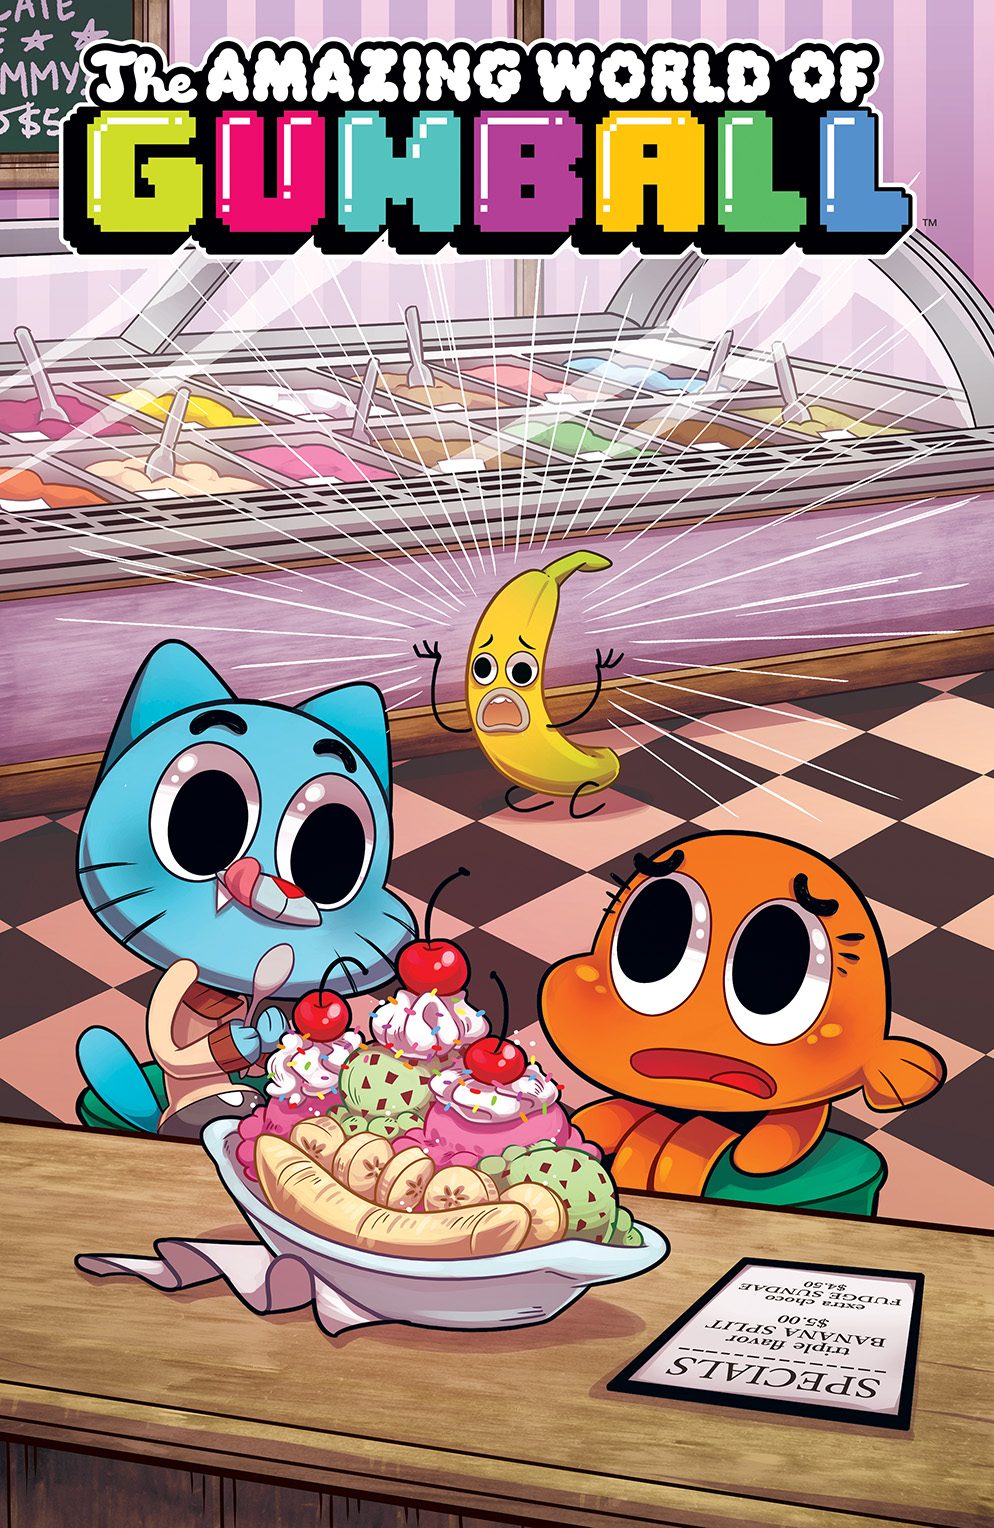 The Amazing World Of Gumball The Tba Issue 5 | The A...